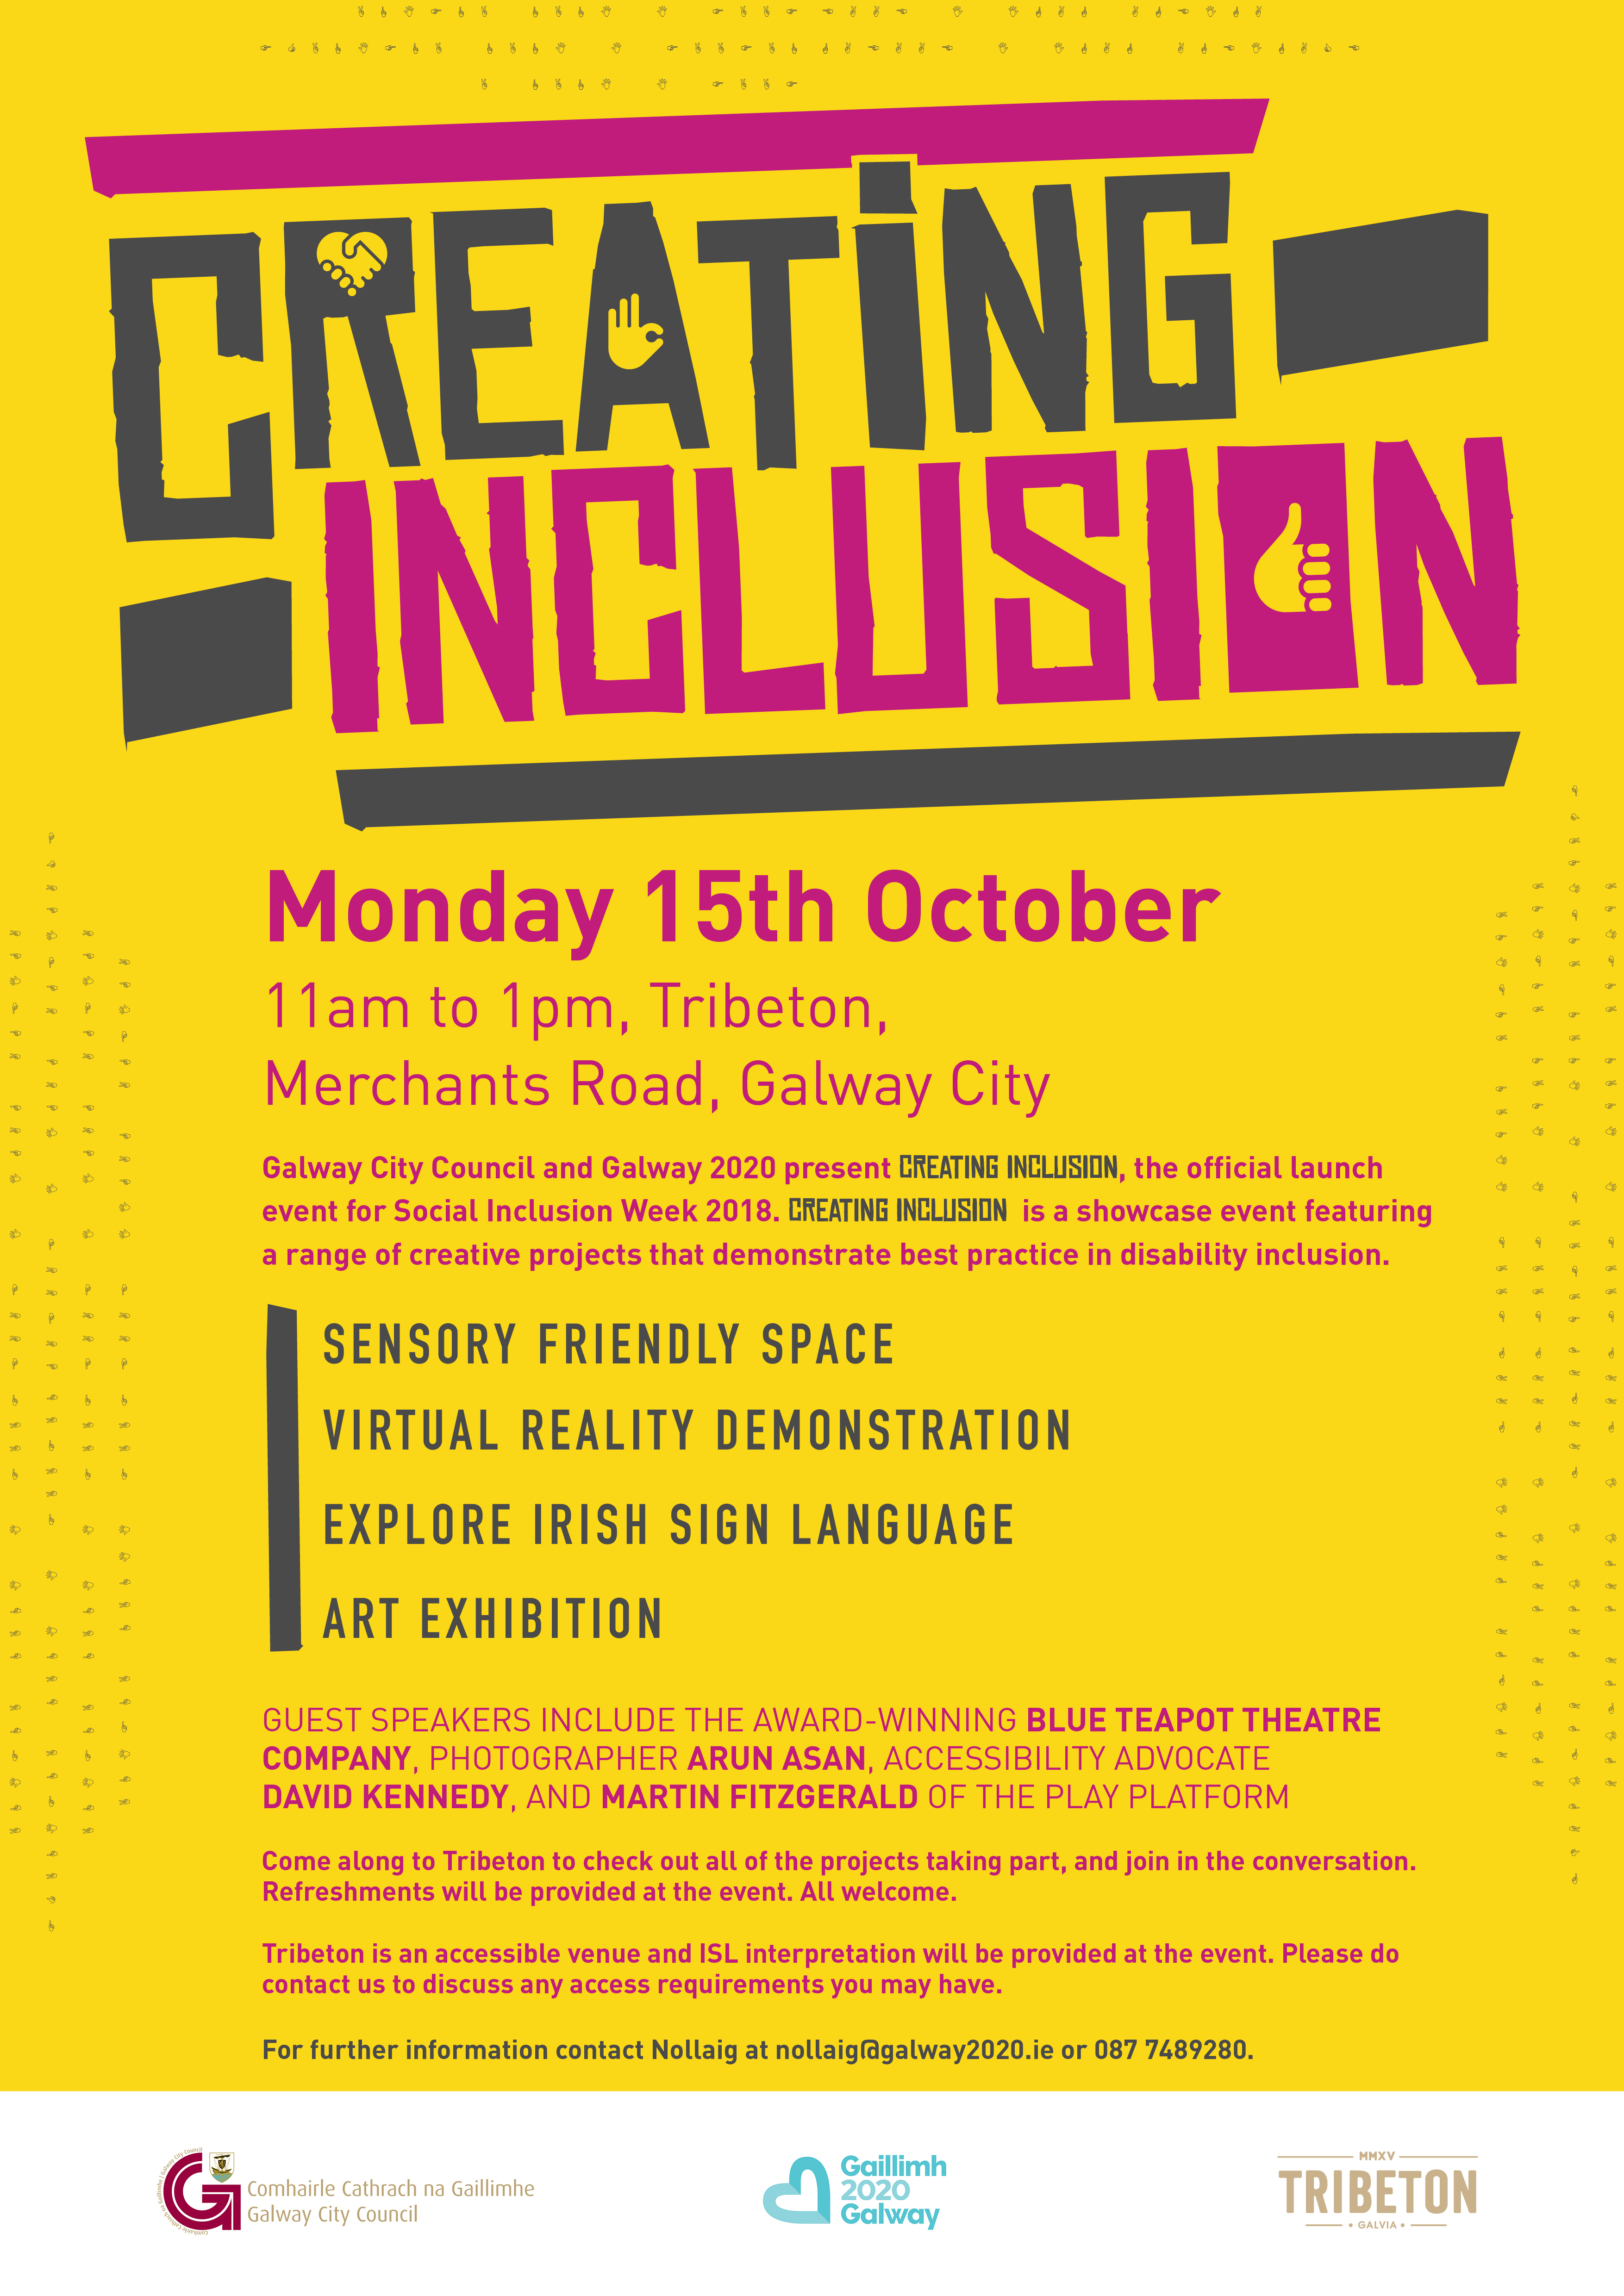 Creating Inclusion